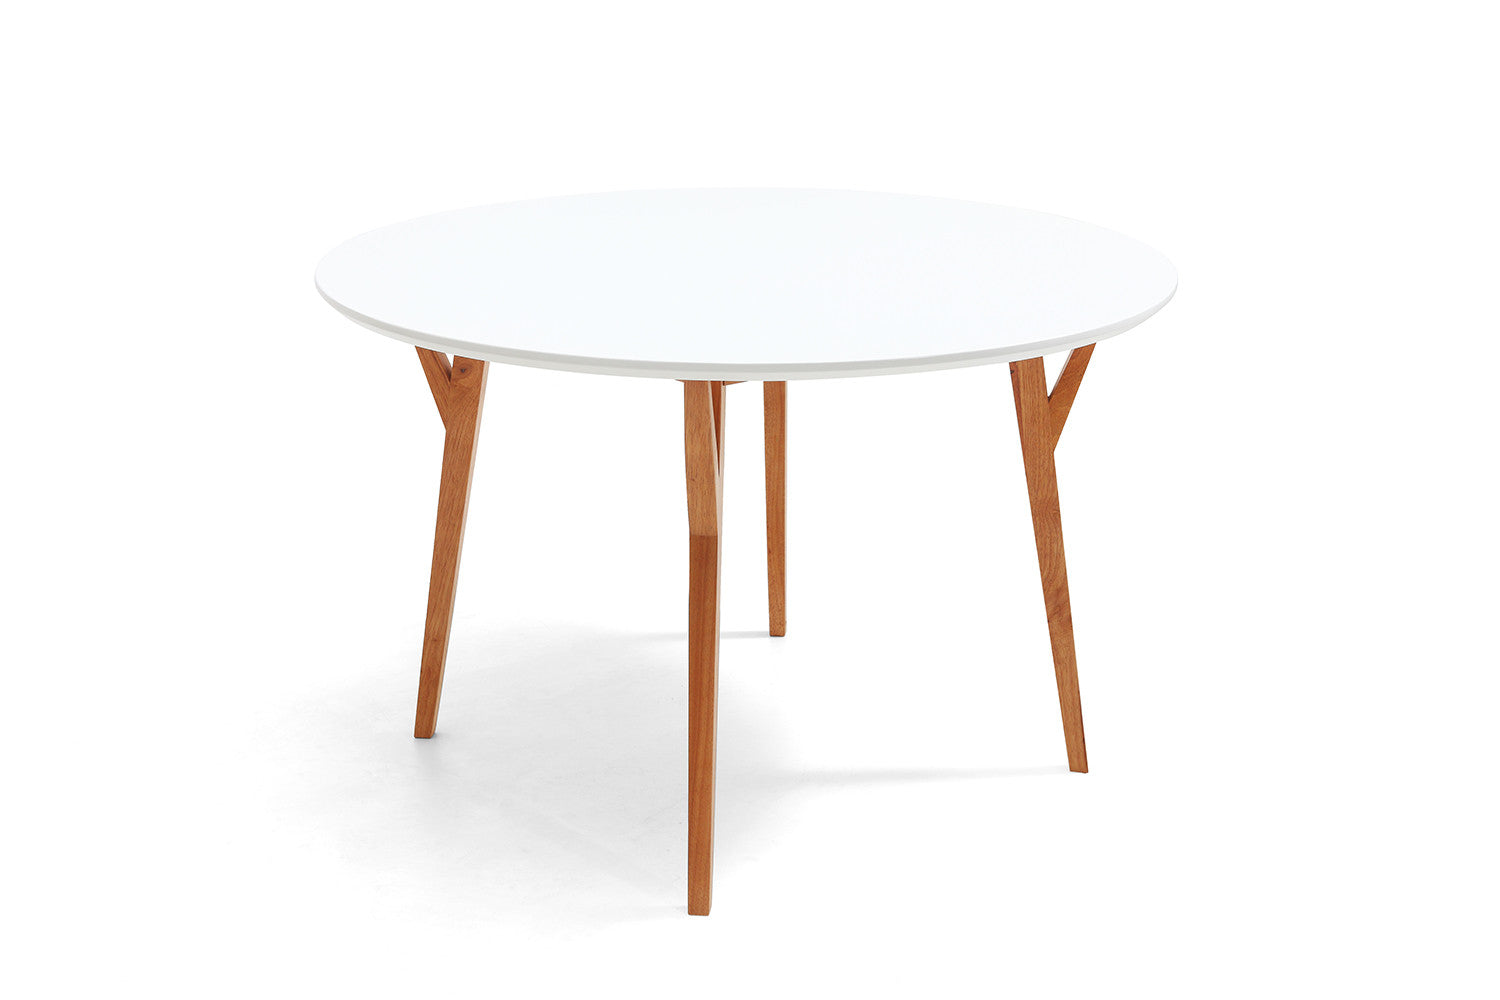 Table de salle manger ronde design scandinave moesa for Table de salle a manger